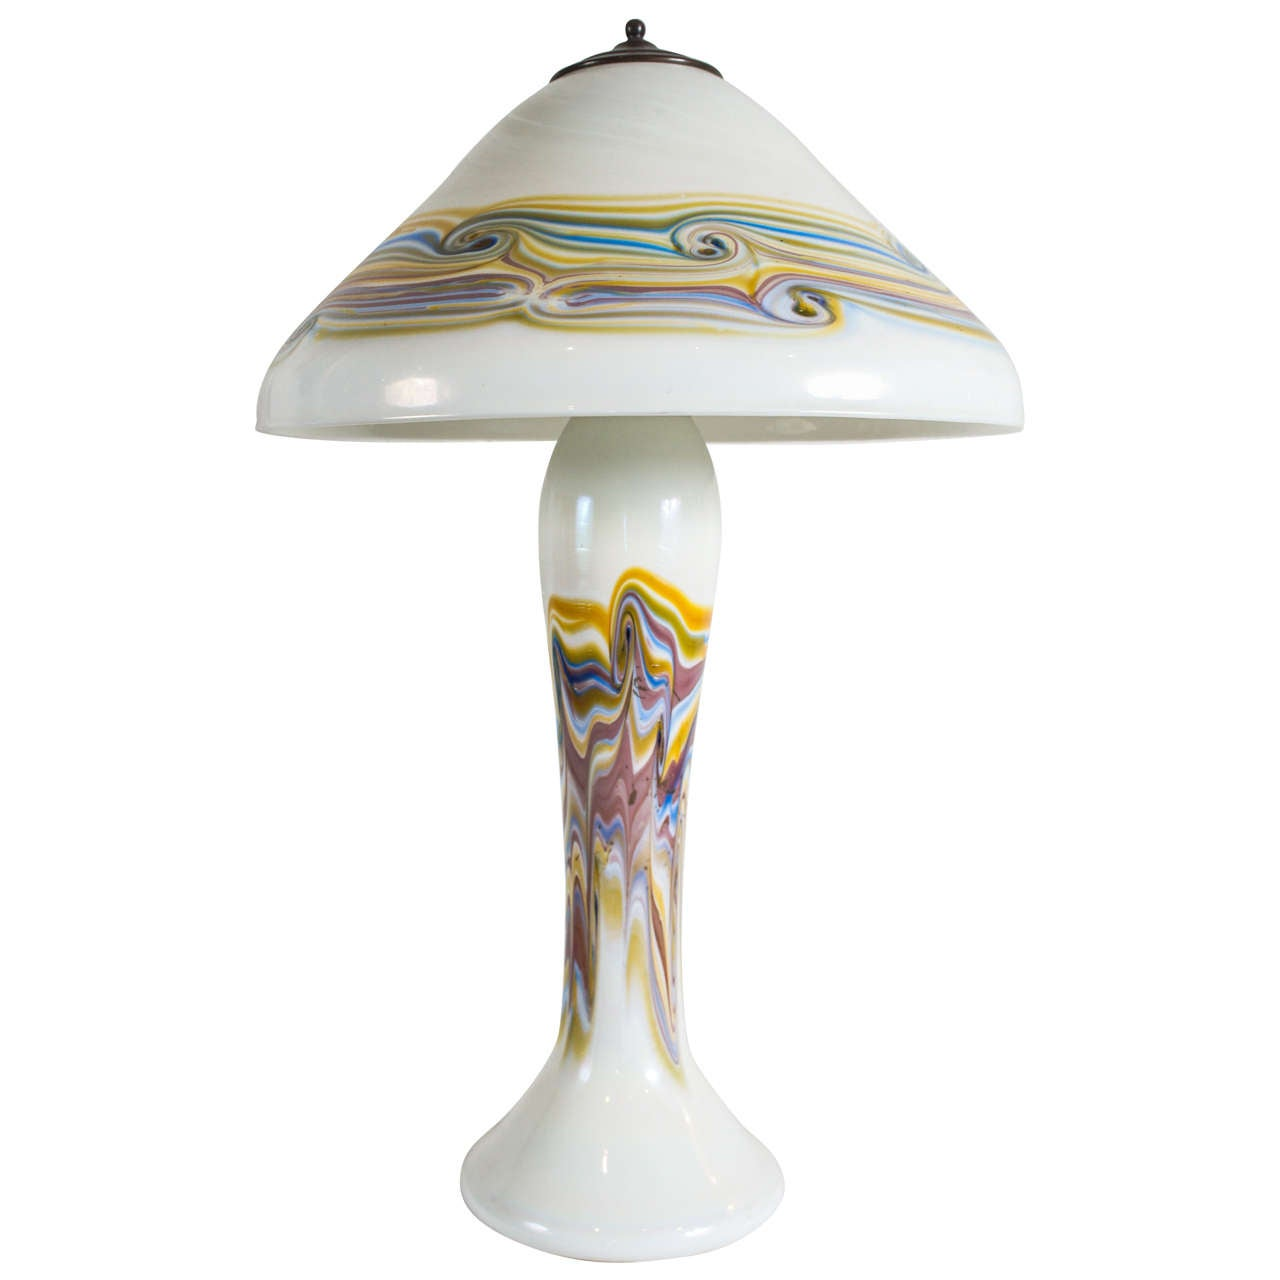 tiffany style swirled glass lamp with glass shade for sale at 1stdibs. Black Bedroom Furniture Sets. Home Design Ideas